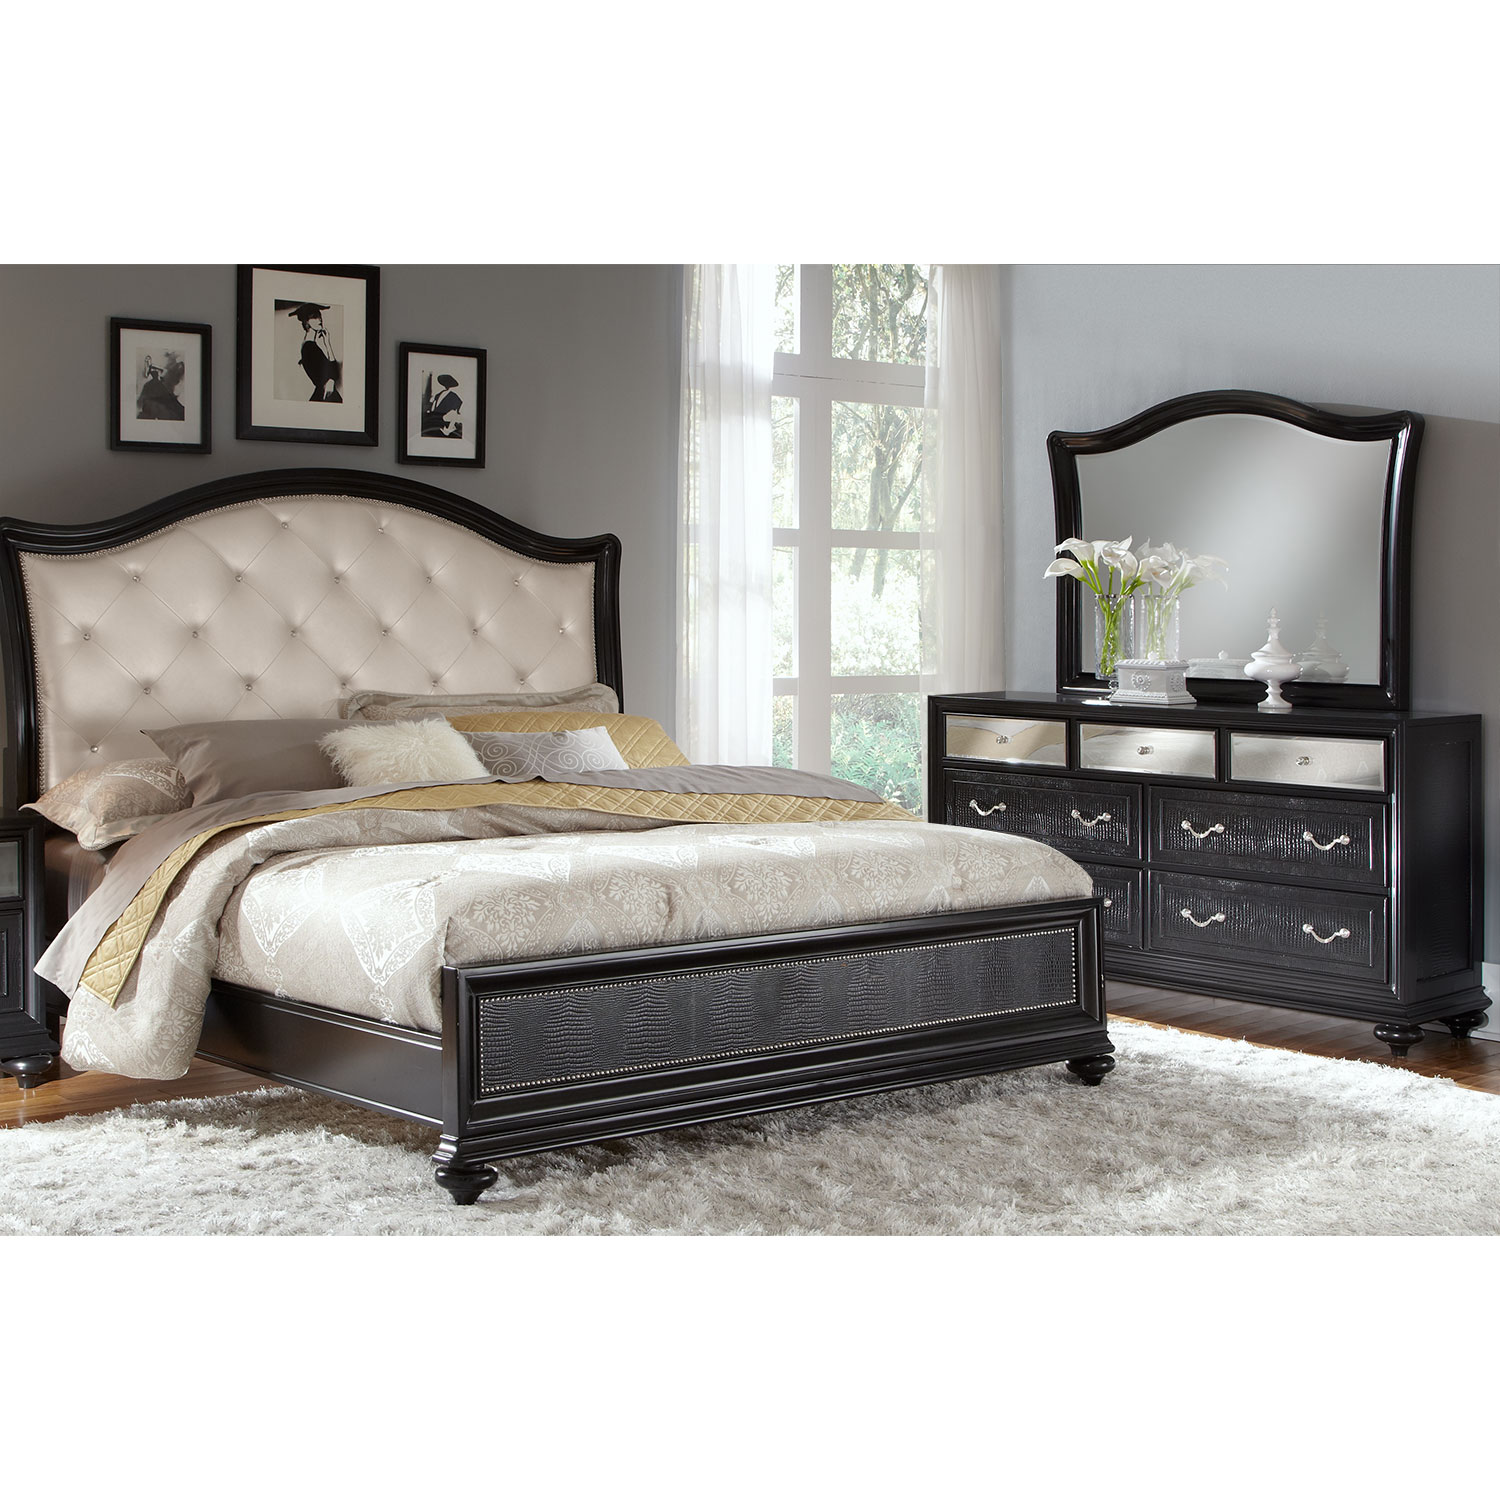 169998 marilyn 5 piece queen bedroom set ebony by pulaski